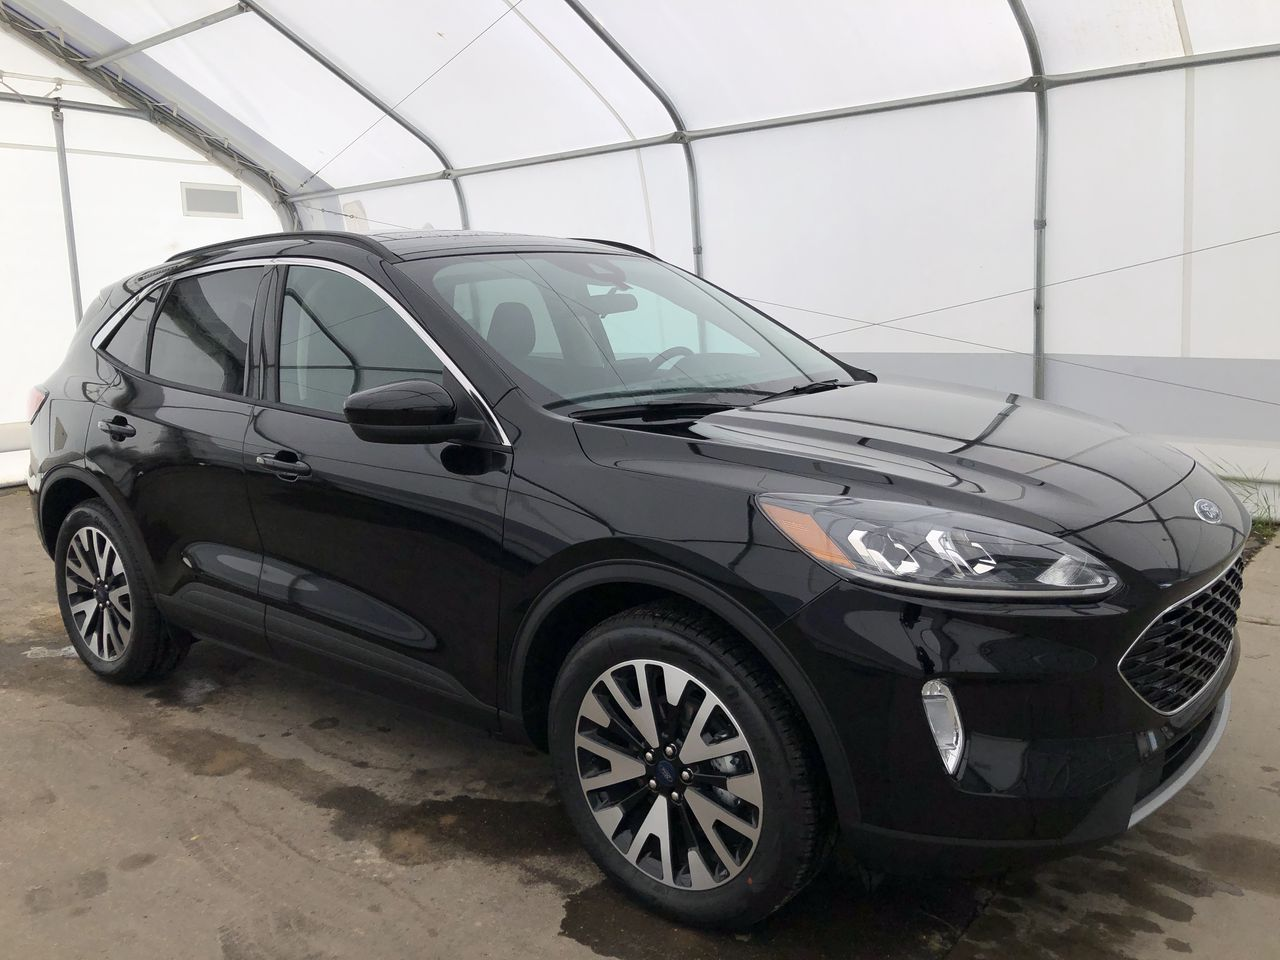 2020 Ford Escape Sel (0N6653) Main Image